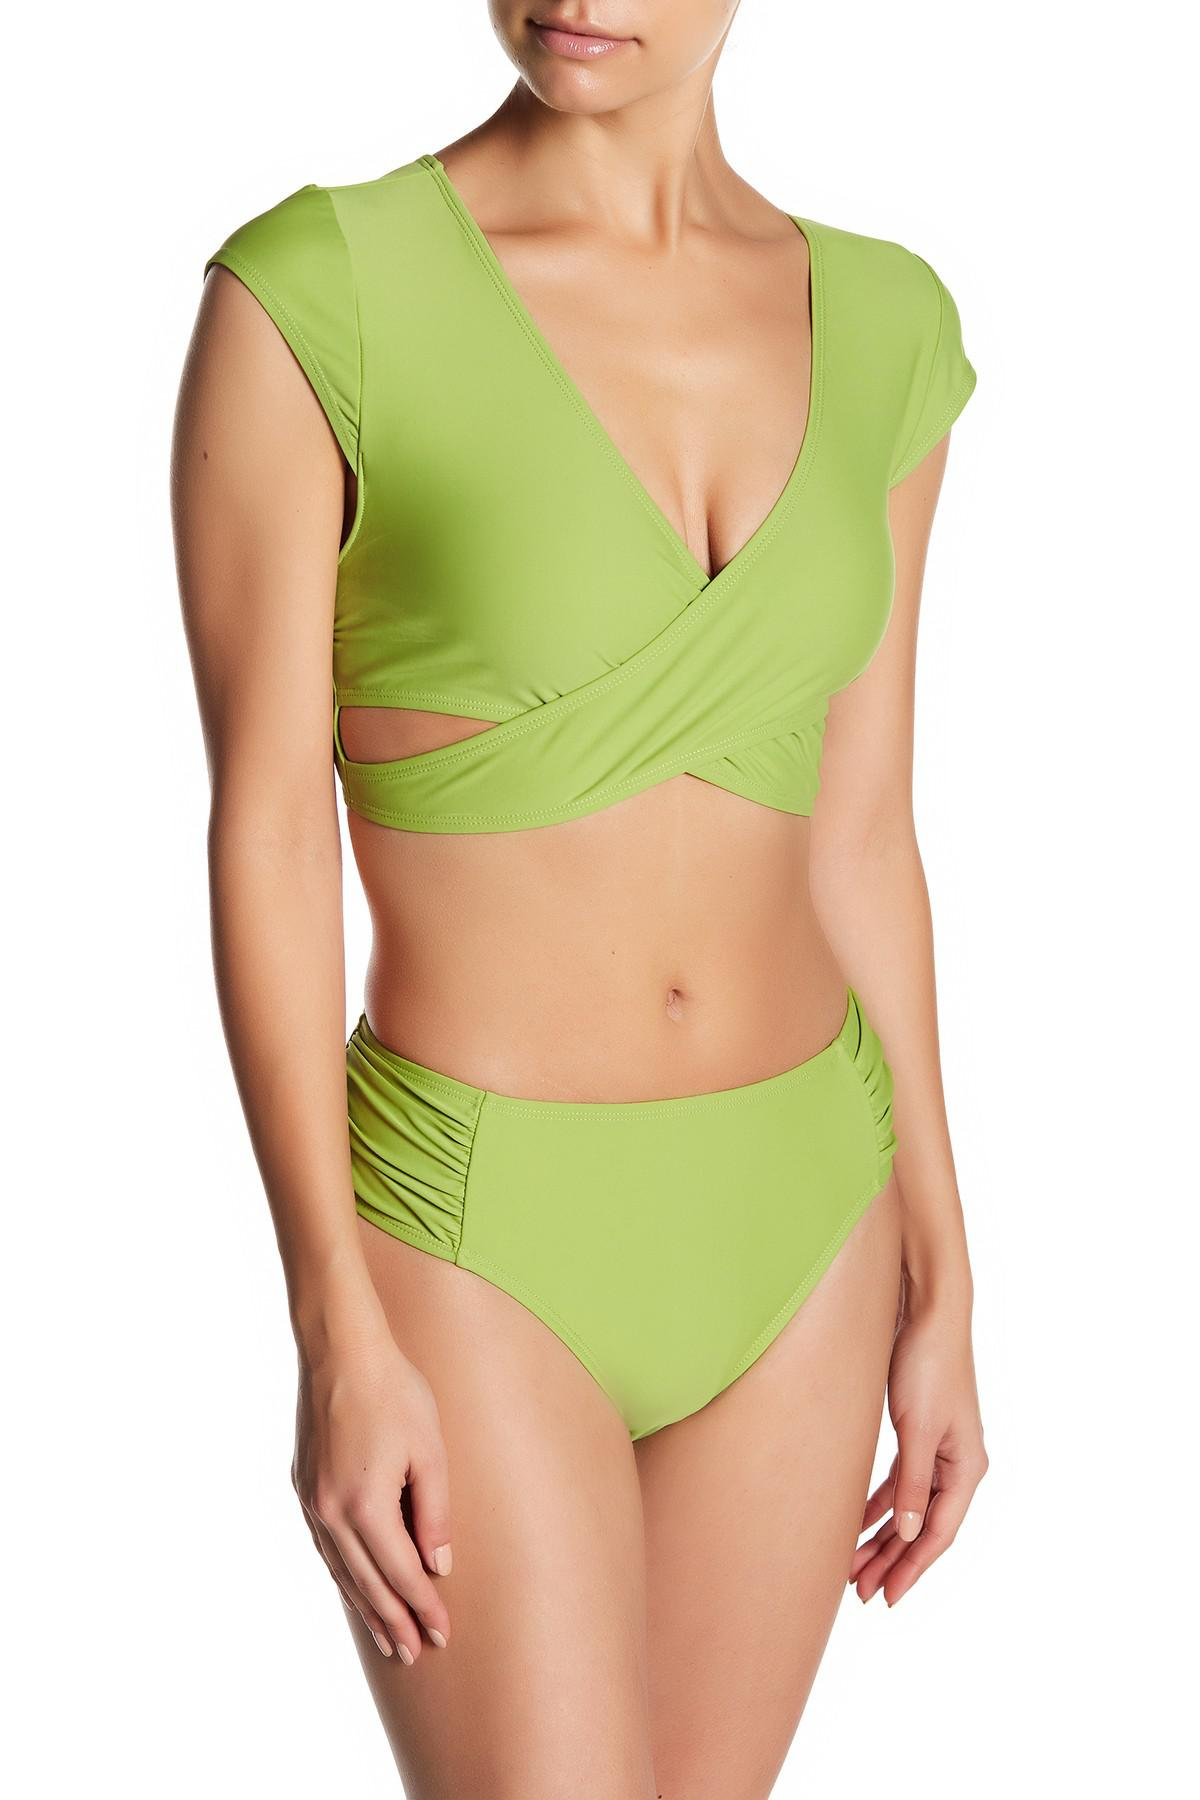 fa71e0a5f8704 Juicy Couture Marilyn Monroe Crop 2-piece Swimsuit in Green - Lyst